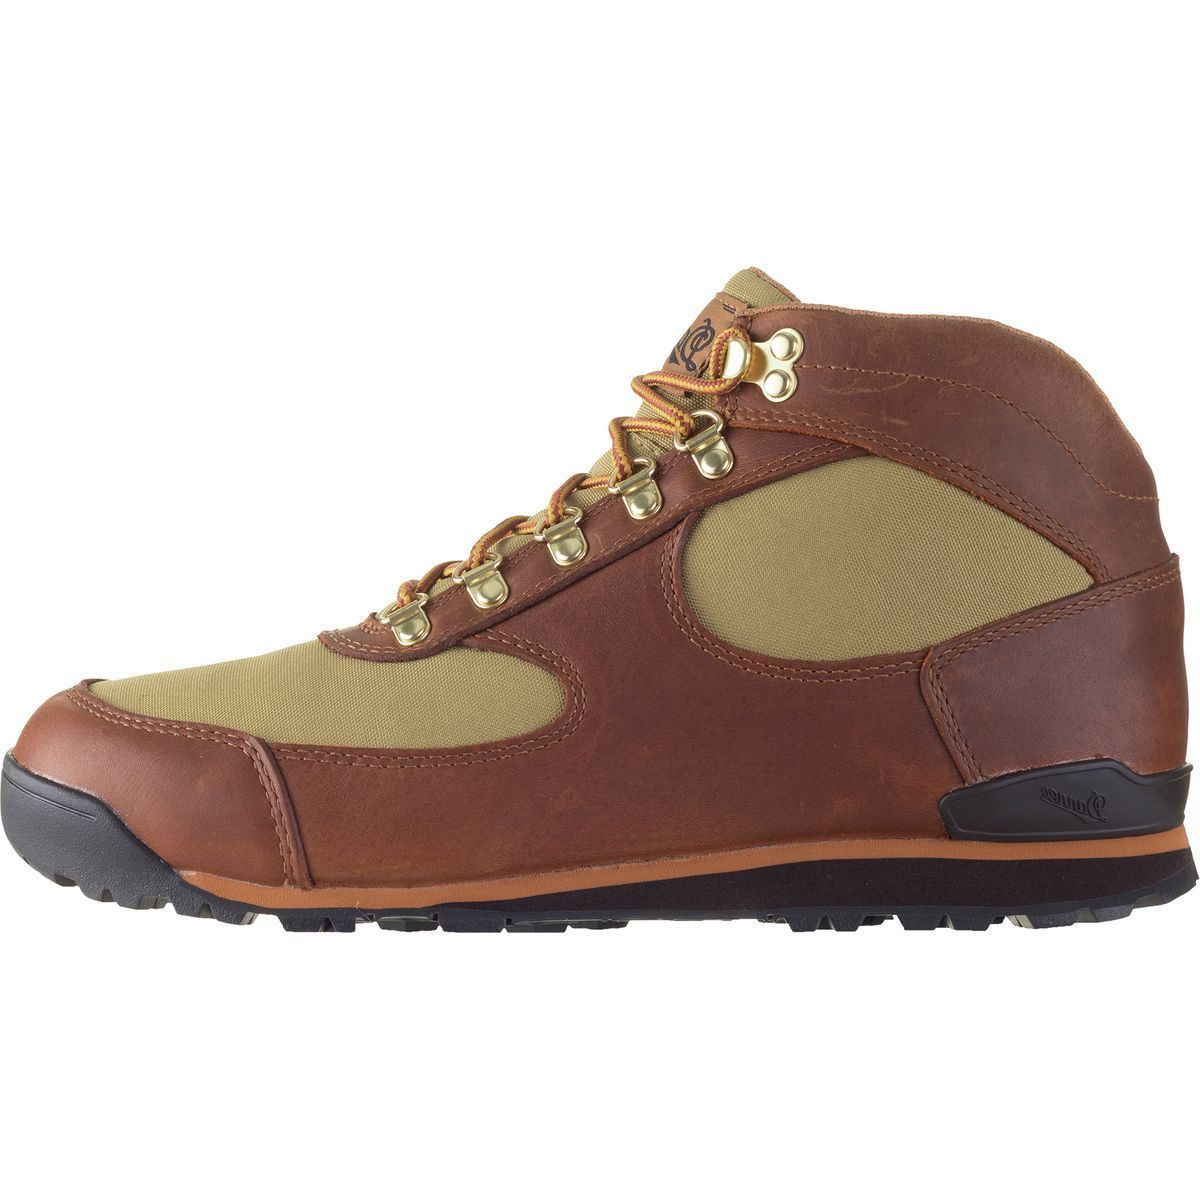 Danner Jag Hiking Boot - Men's